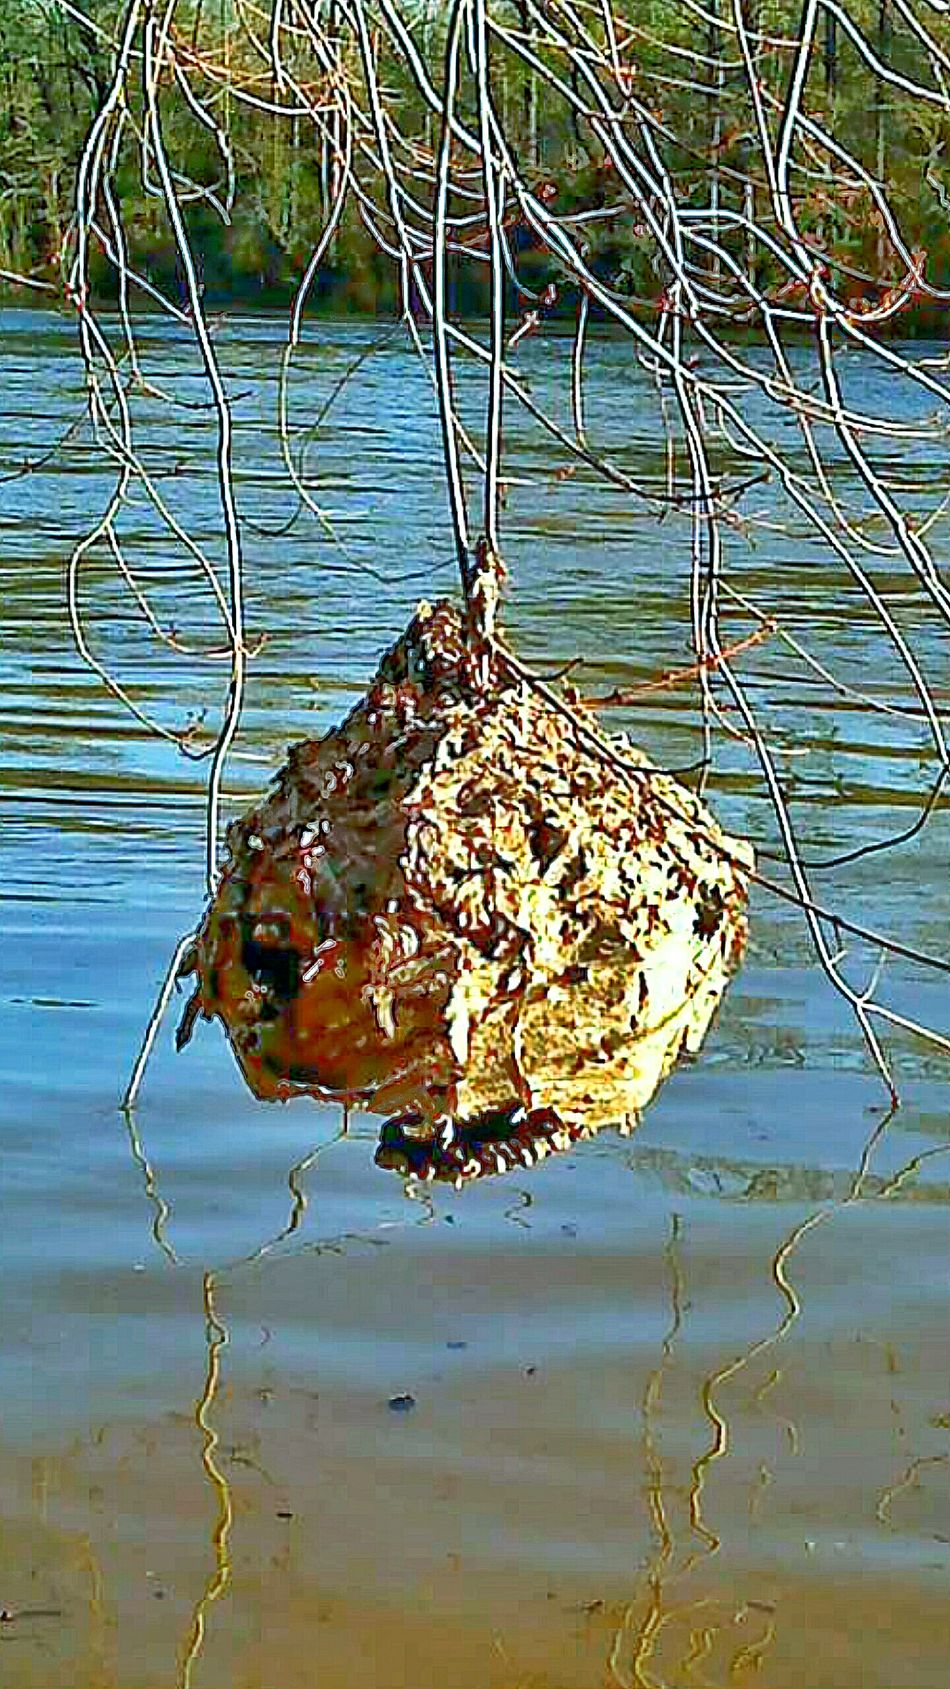 Nature Photography Hornet's Nest Outdoor Photography Water River Tree Limbs Vines Wasp Nest Do Not TOUCH Hornets Nest Hanging Over Water